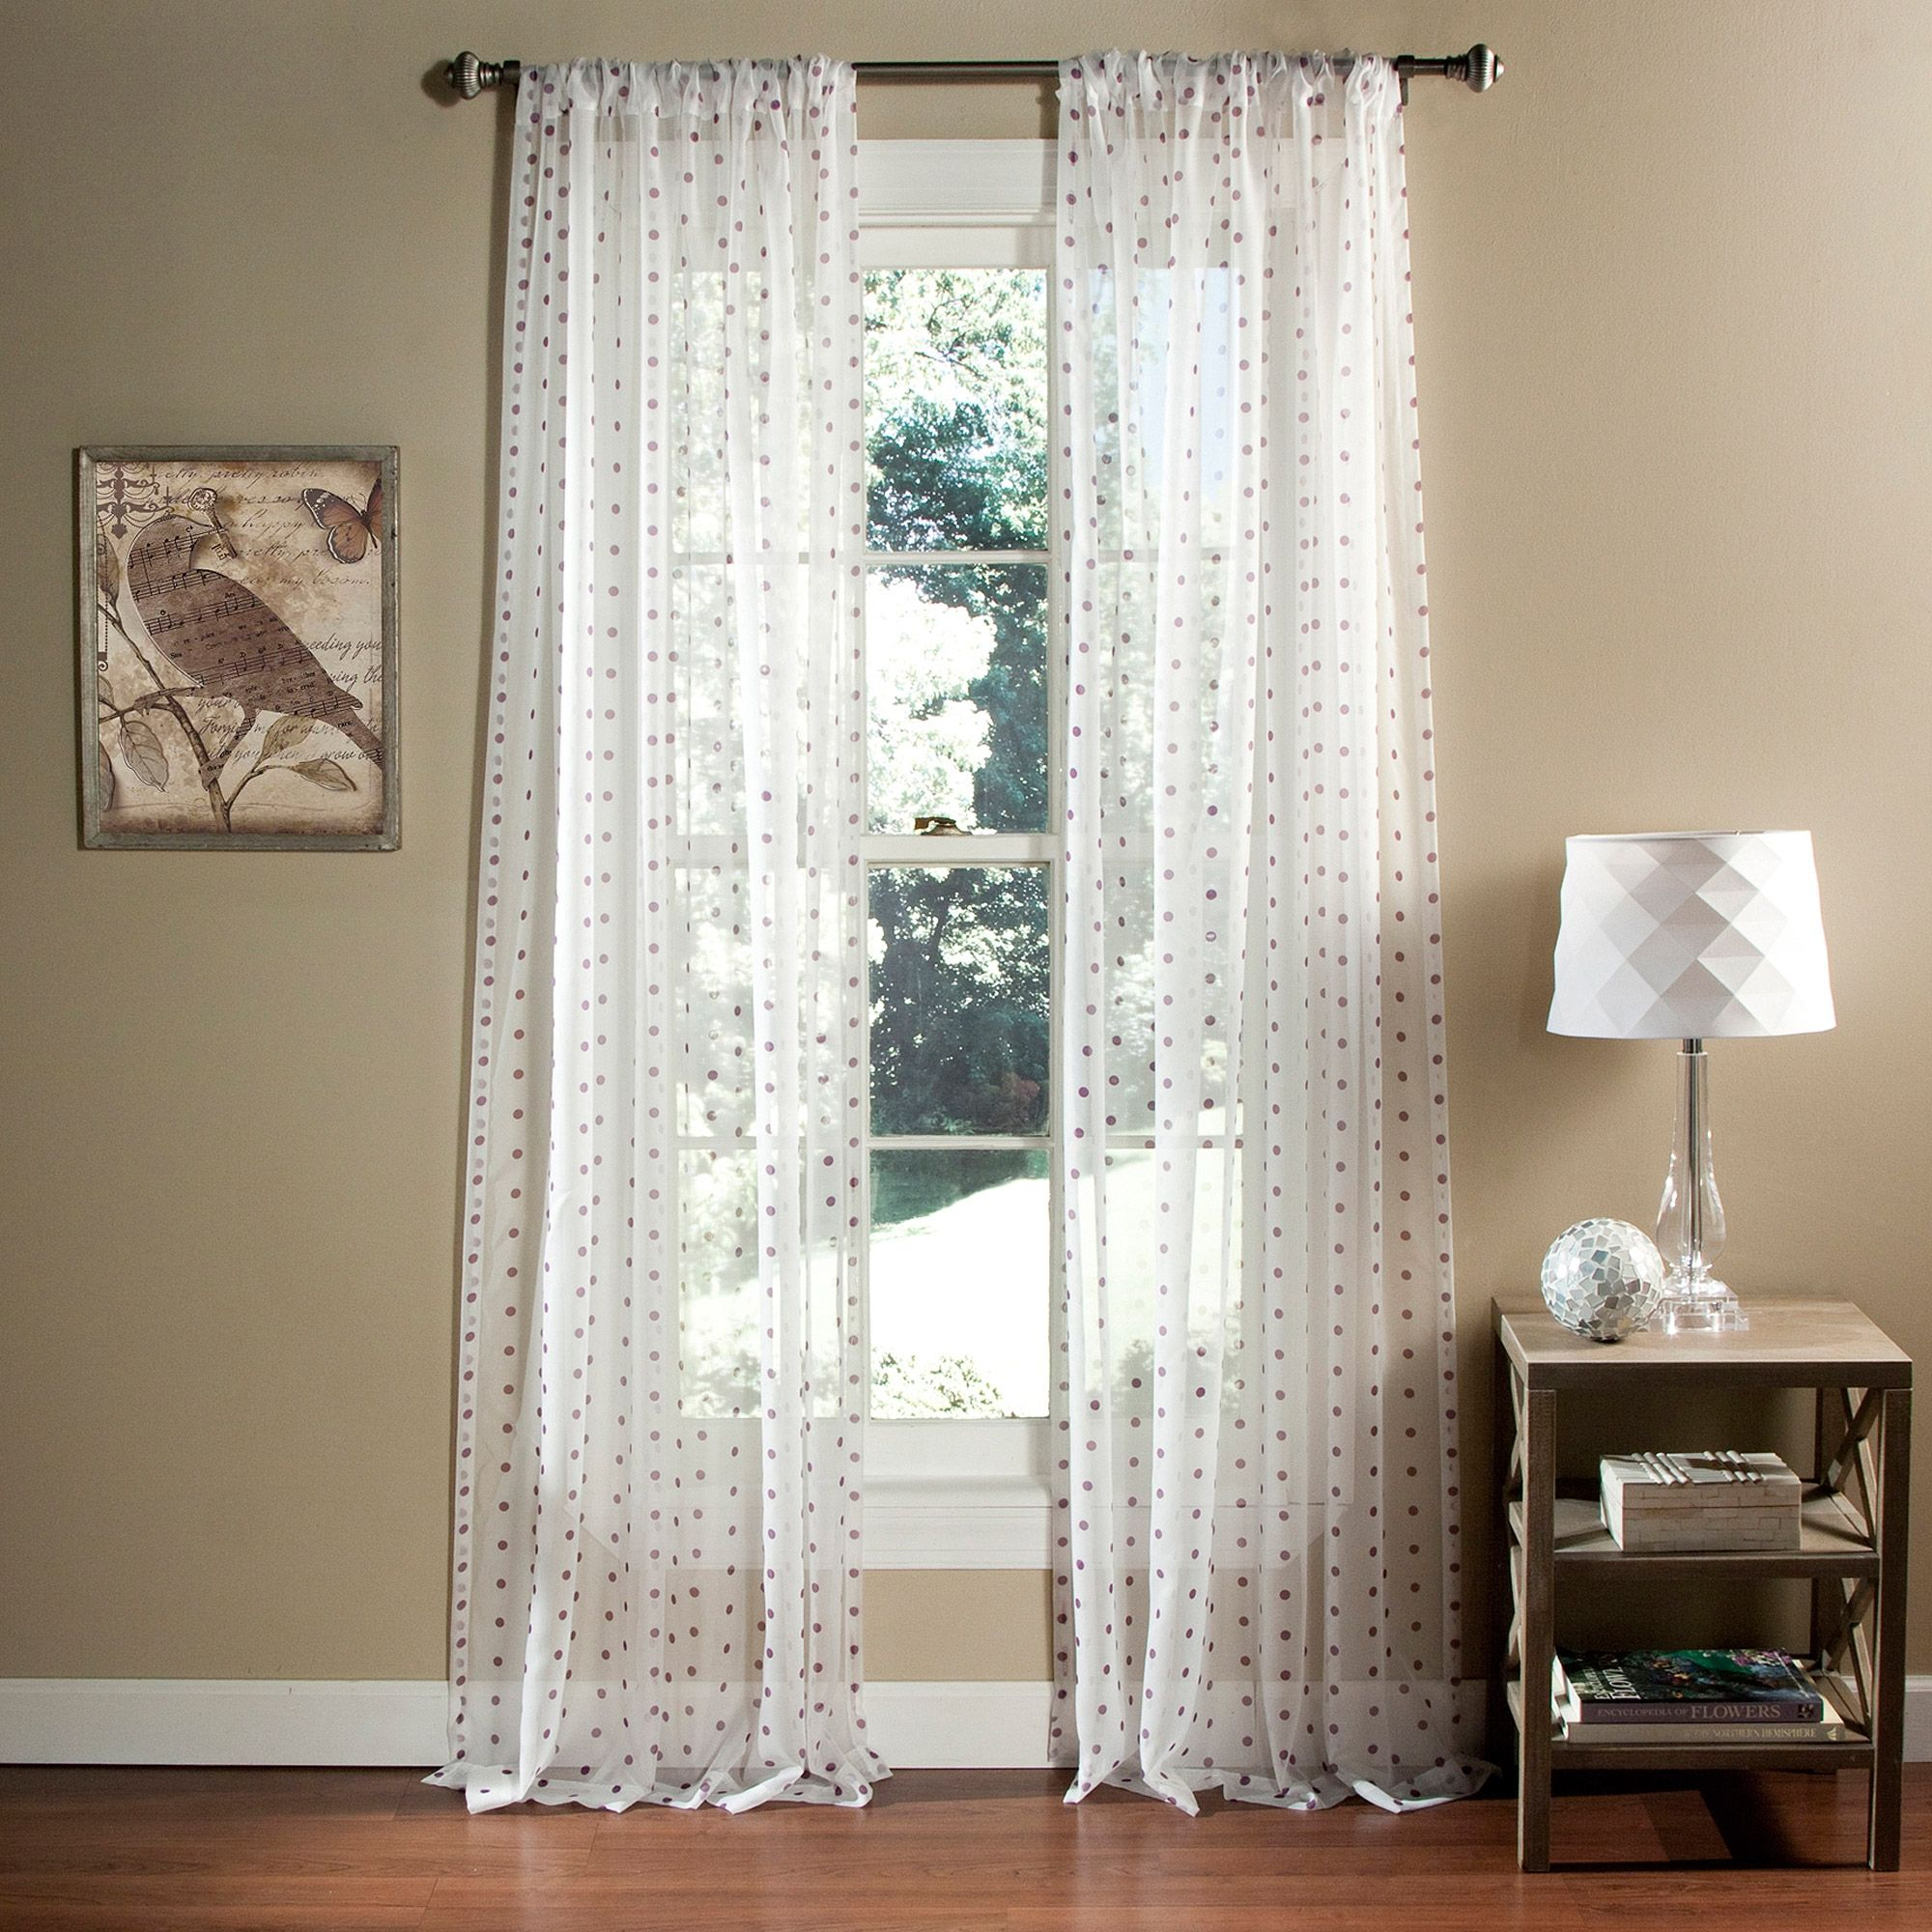 Colorful sheer window curtains realtagfo pinterest